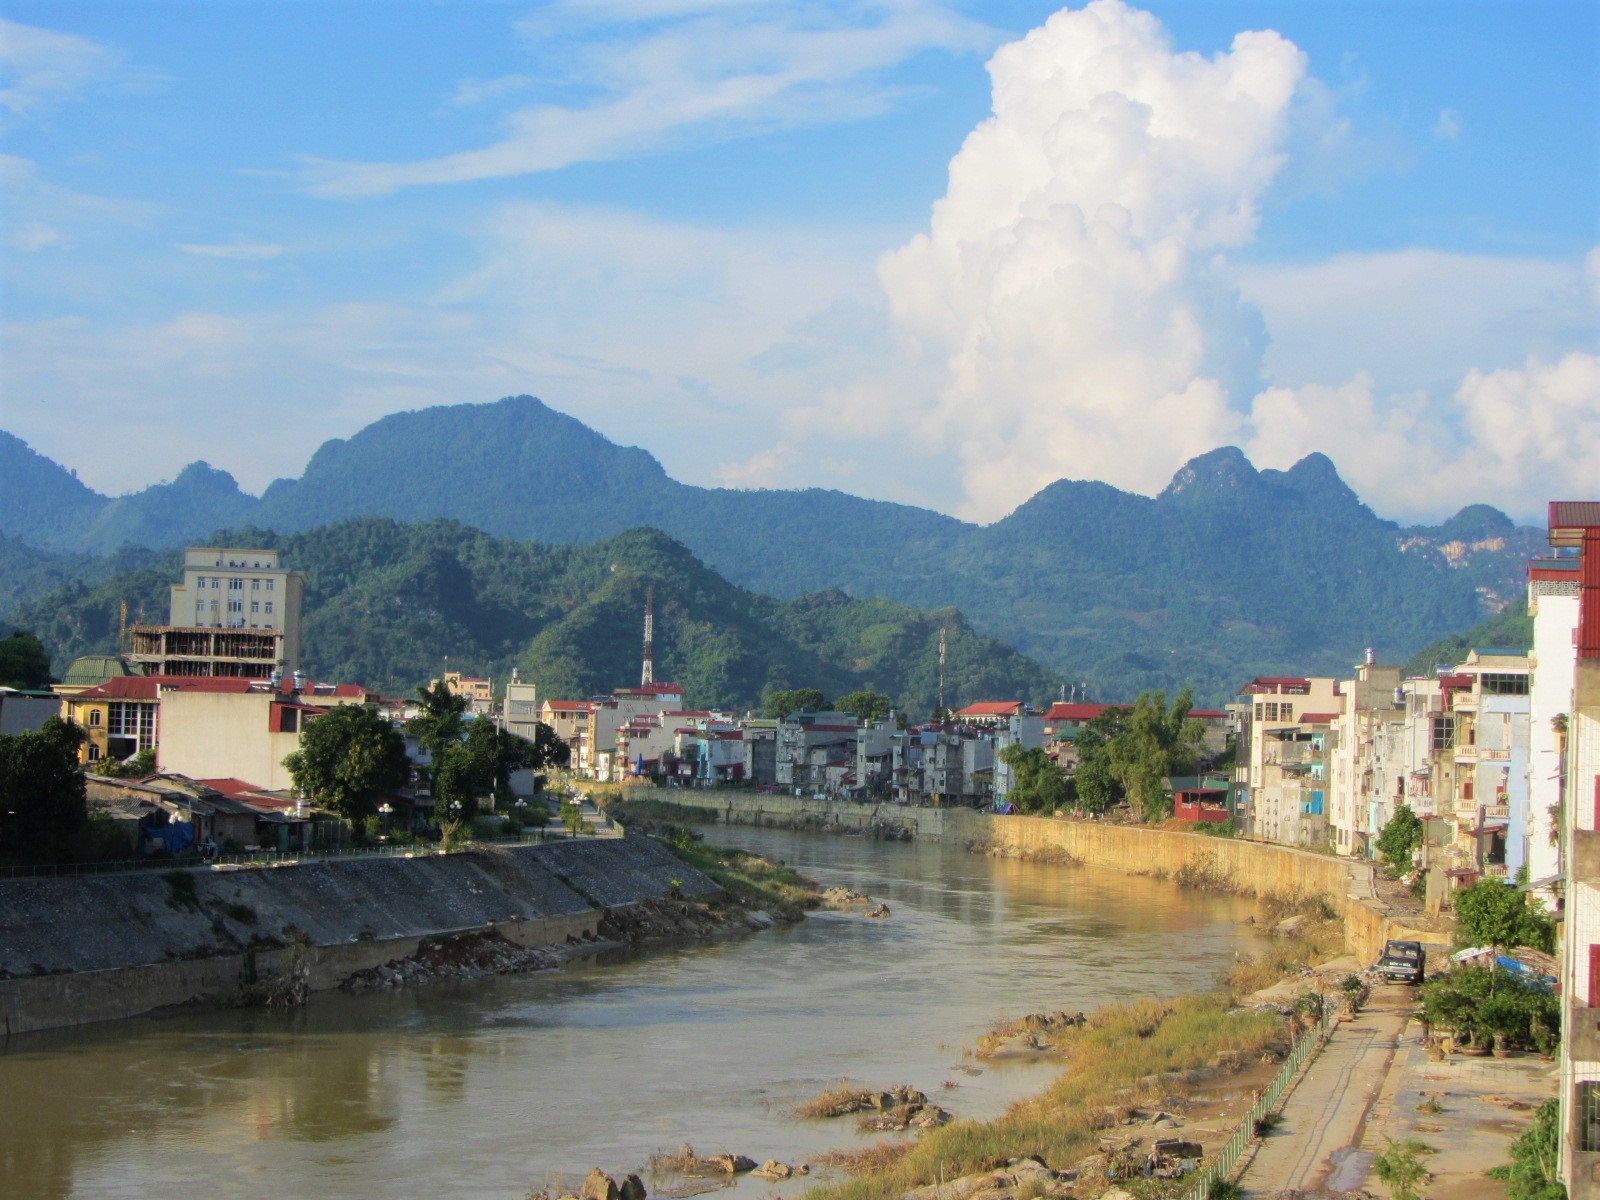 Ha Giang City on the Lo (Blue) River